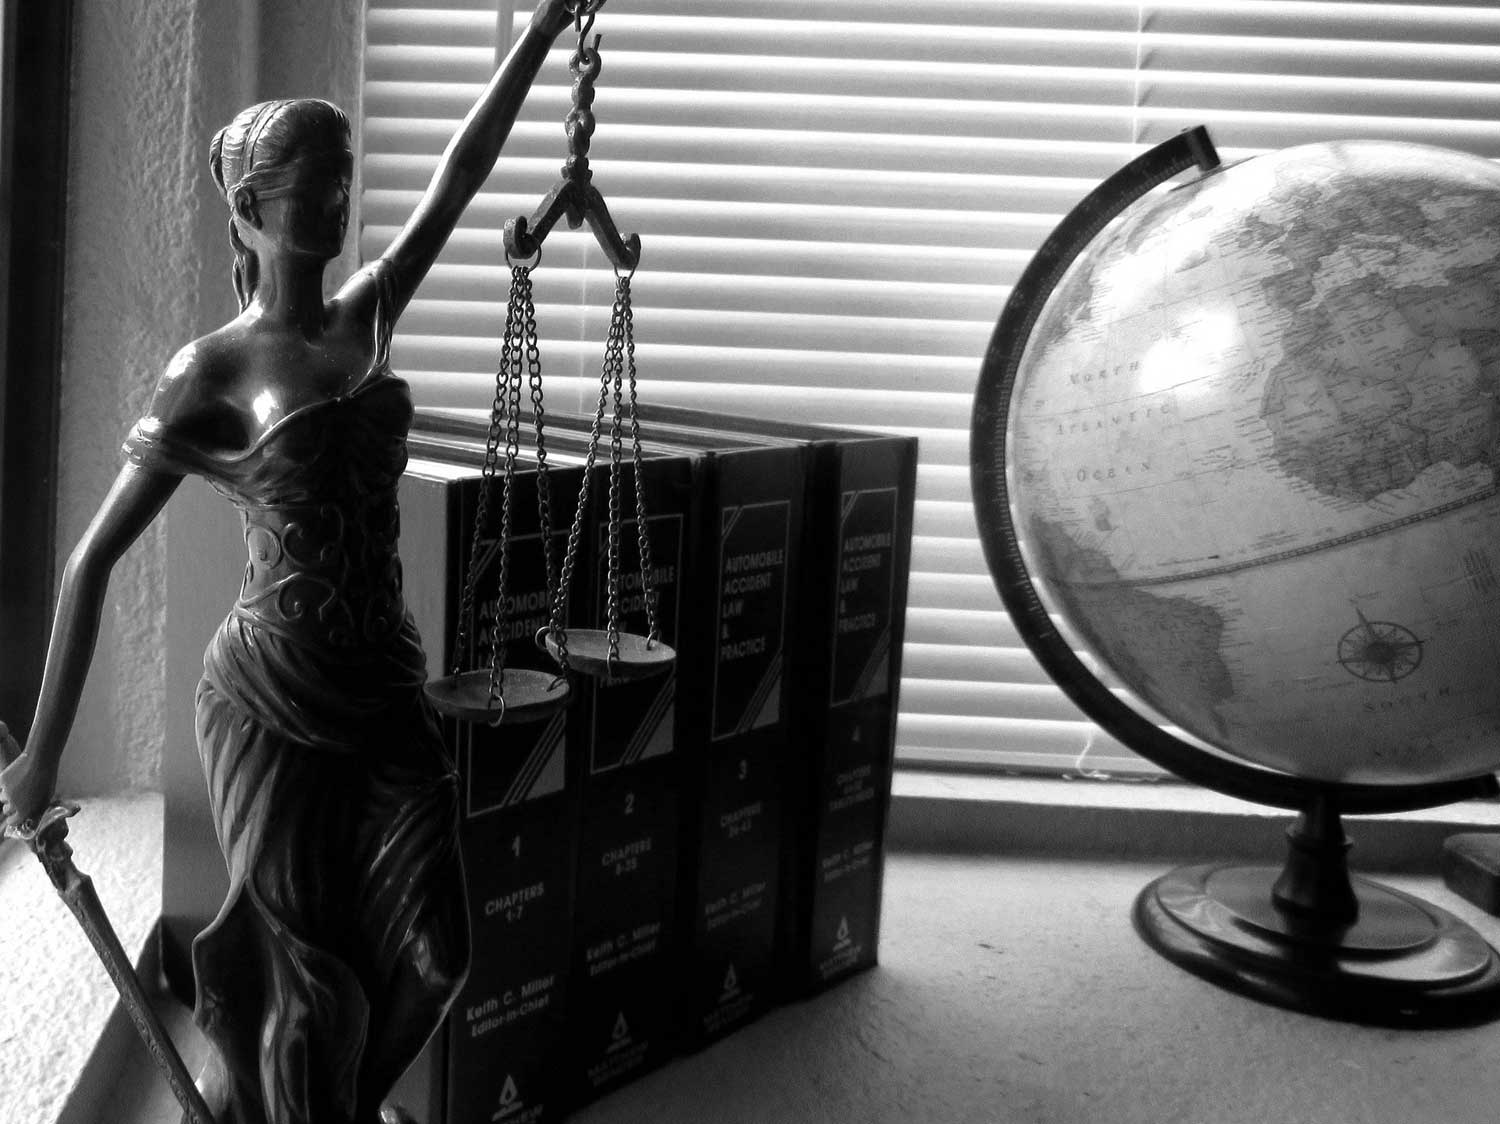 Black-and-white photo of Lady Justice figure in front of 4 law books next to a globe